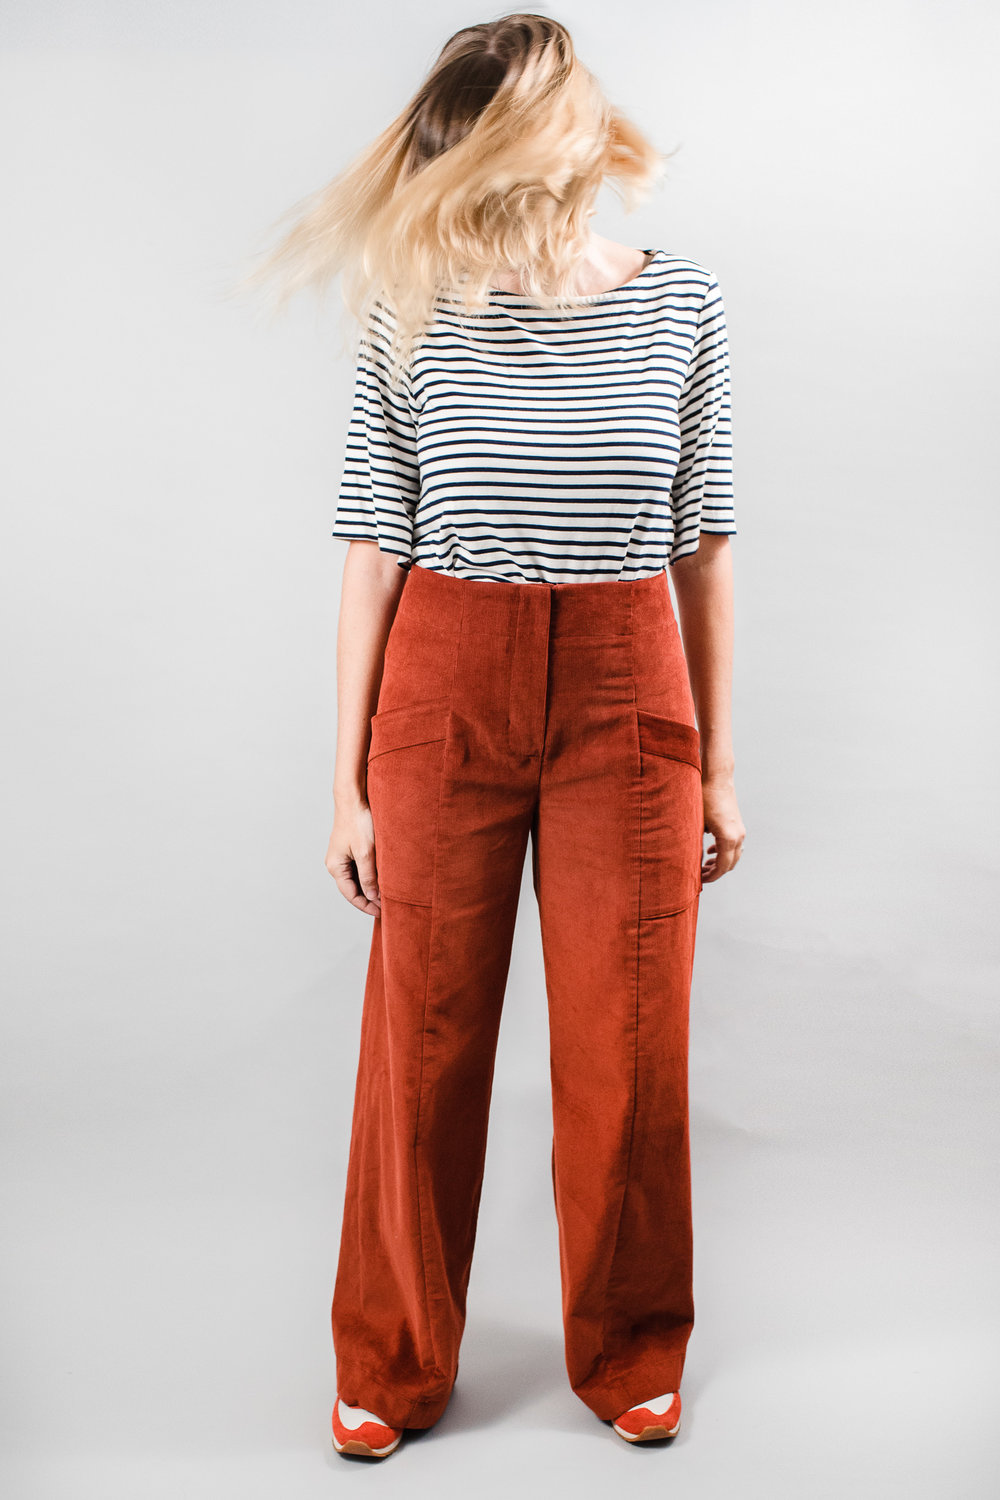 NEW PATTERN RELEASE - Parasol Trousers & Jumpsuit